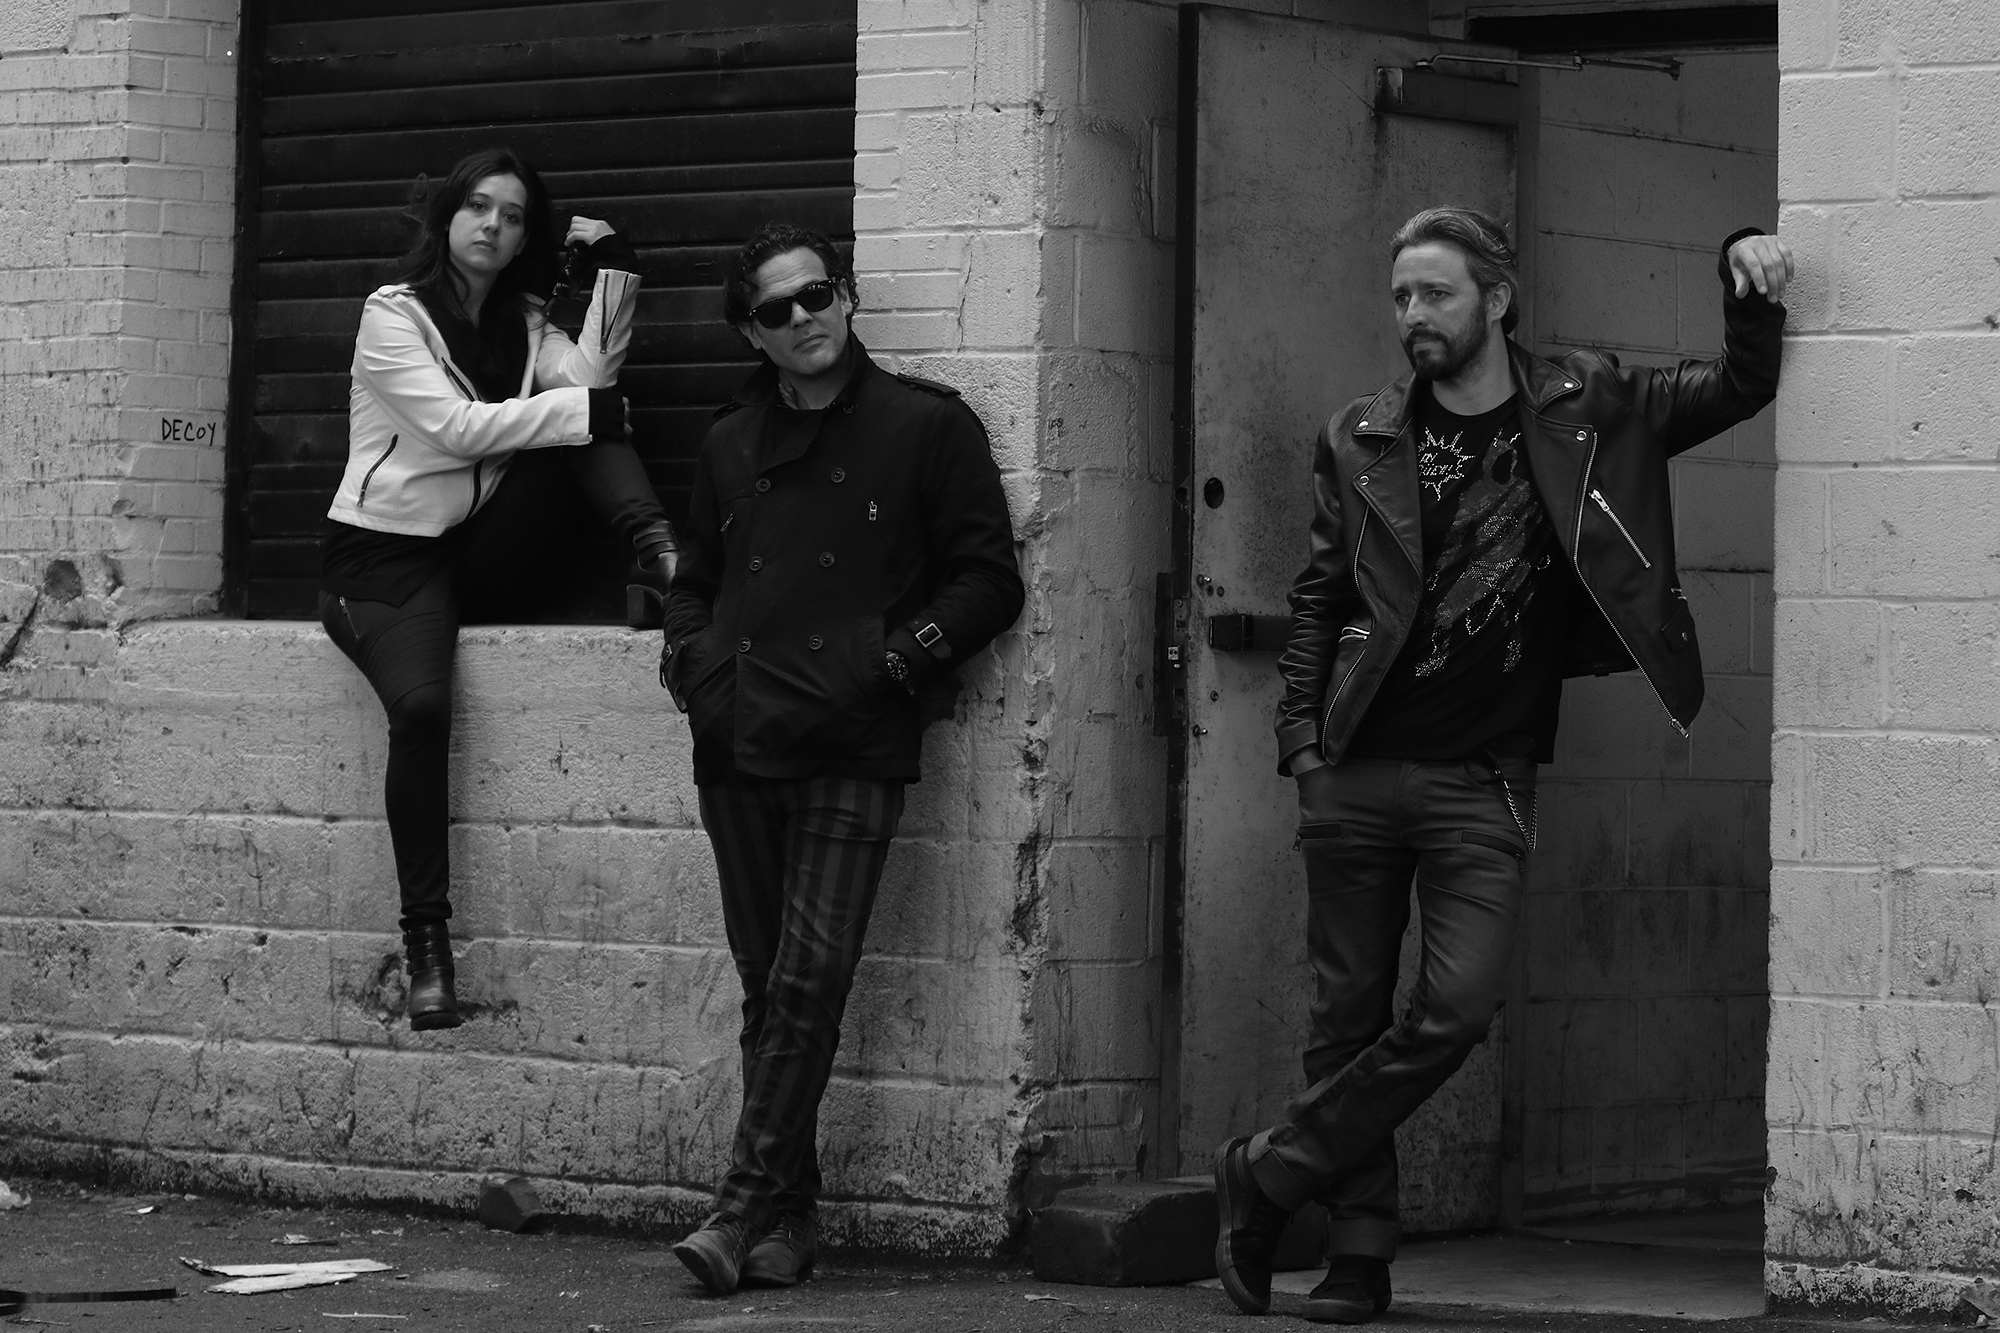 Perro Sombra: Not Your Average Rock Band